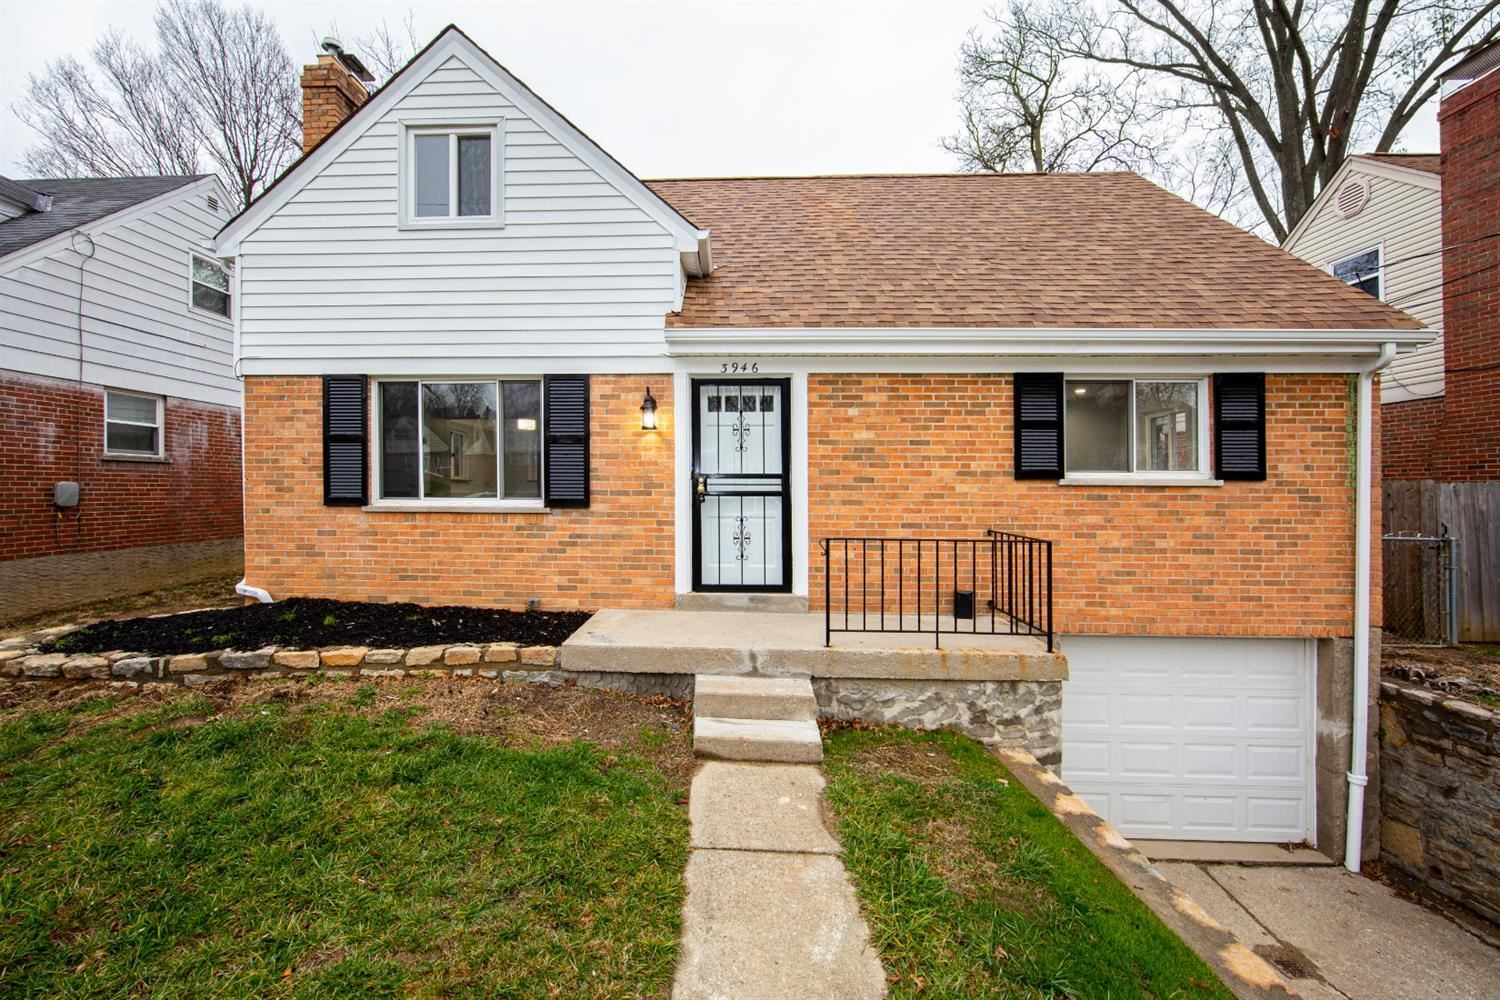 3946 S Fordham Place, Silverton, OH 45213 - #: 1686543